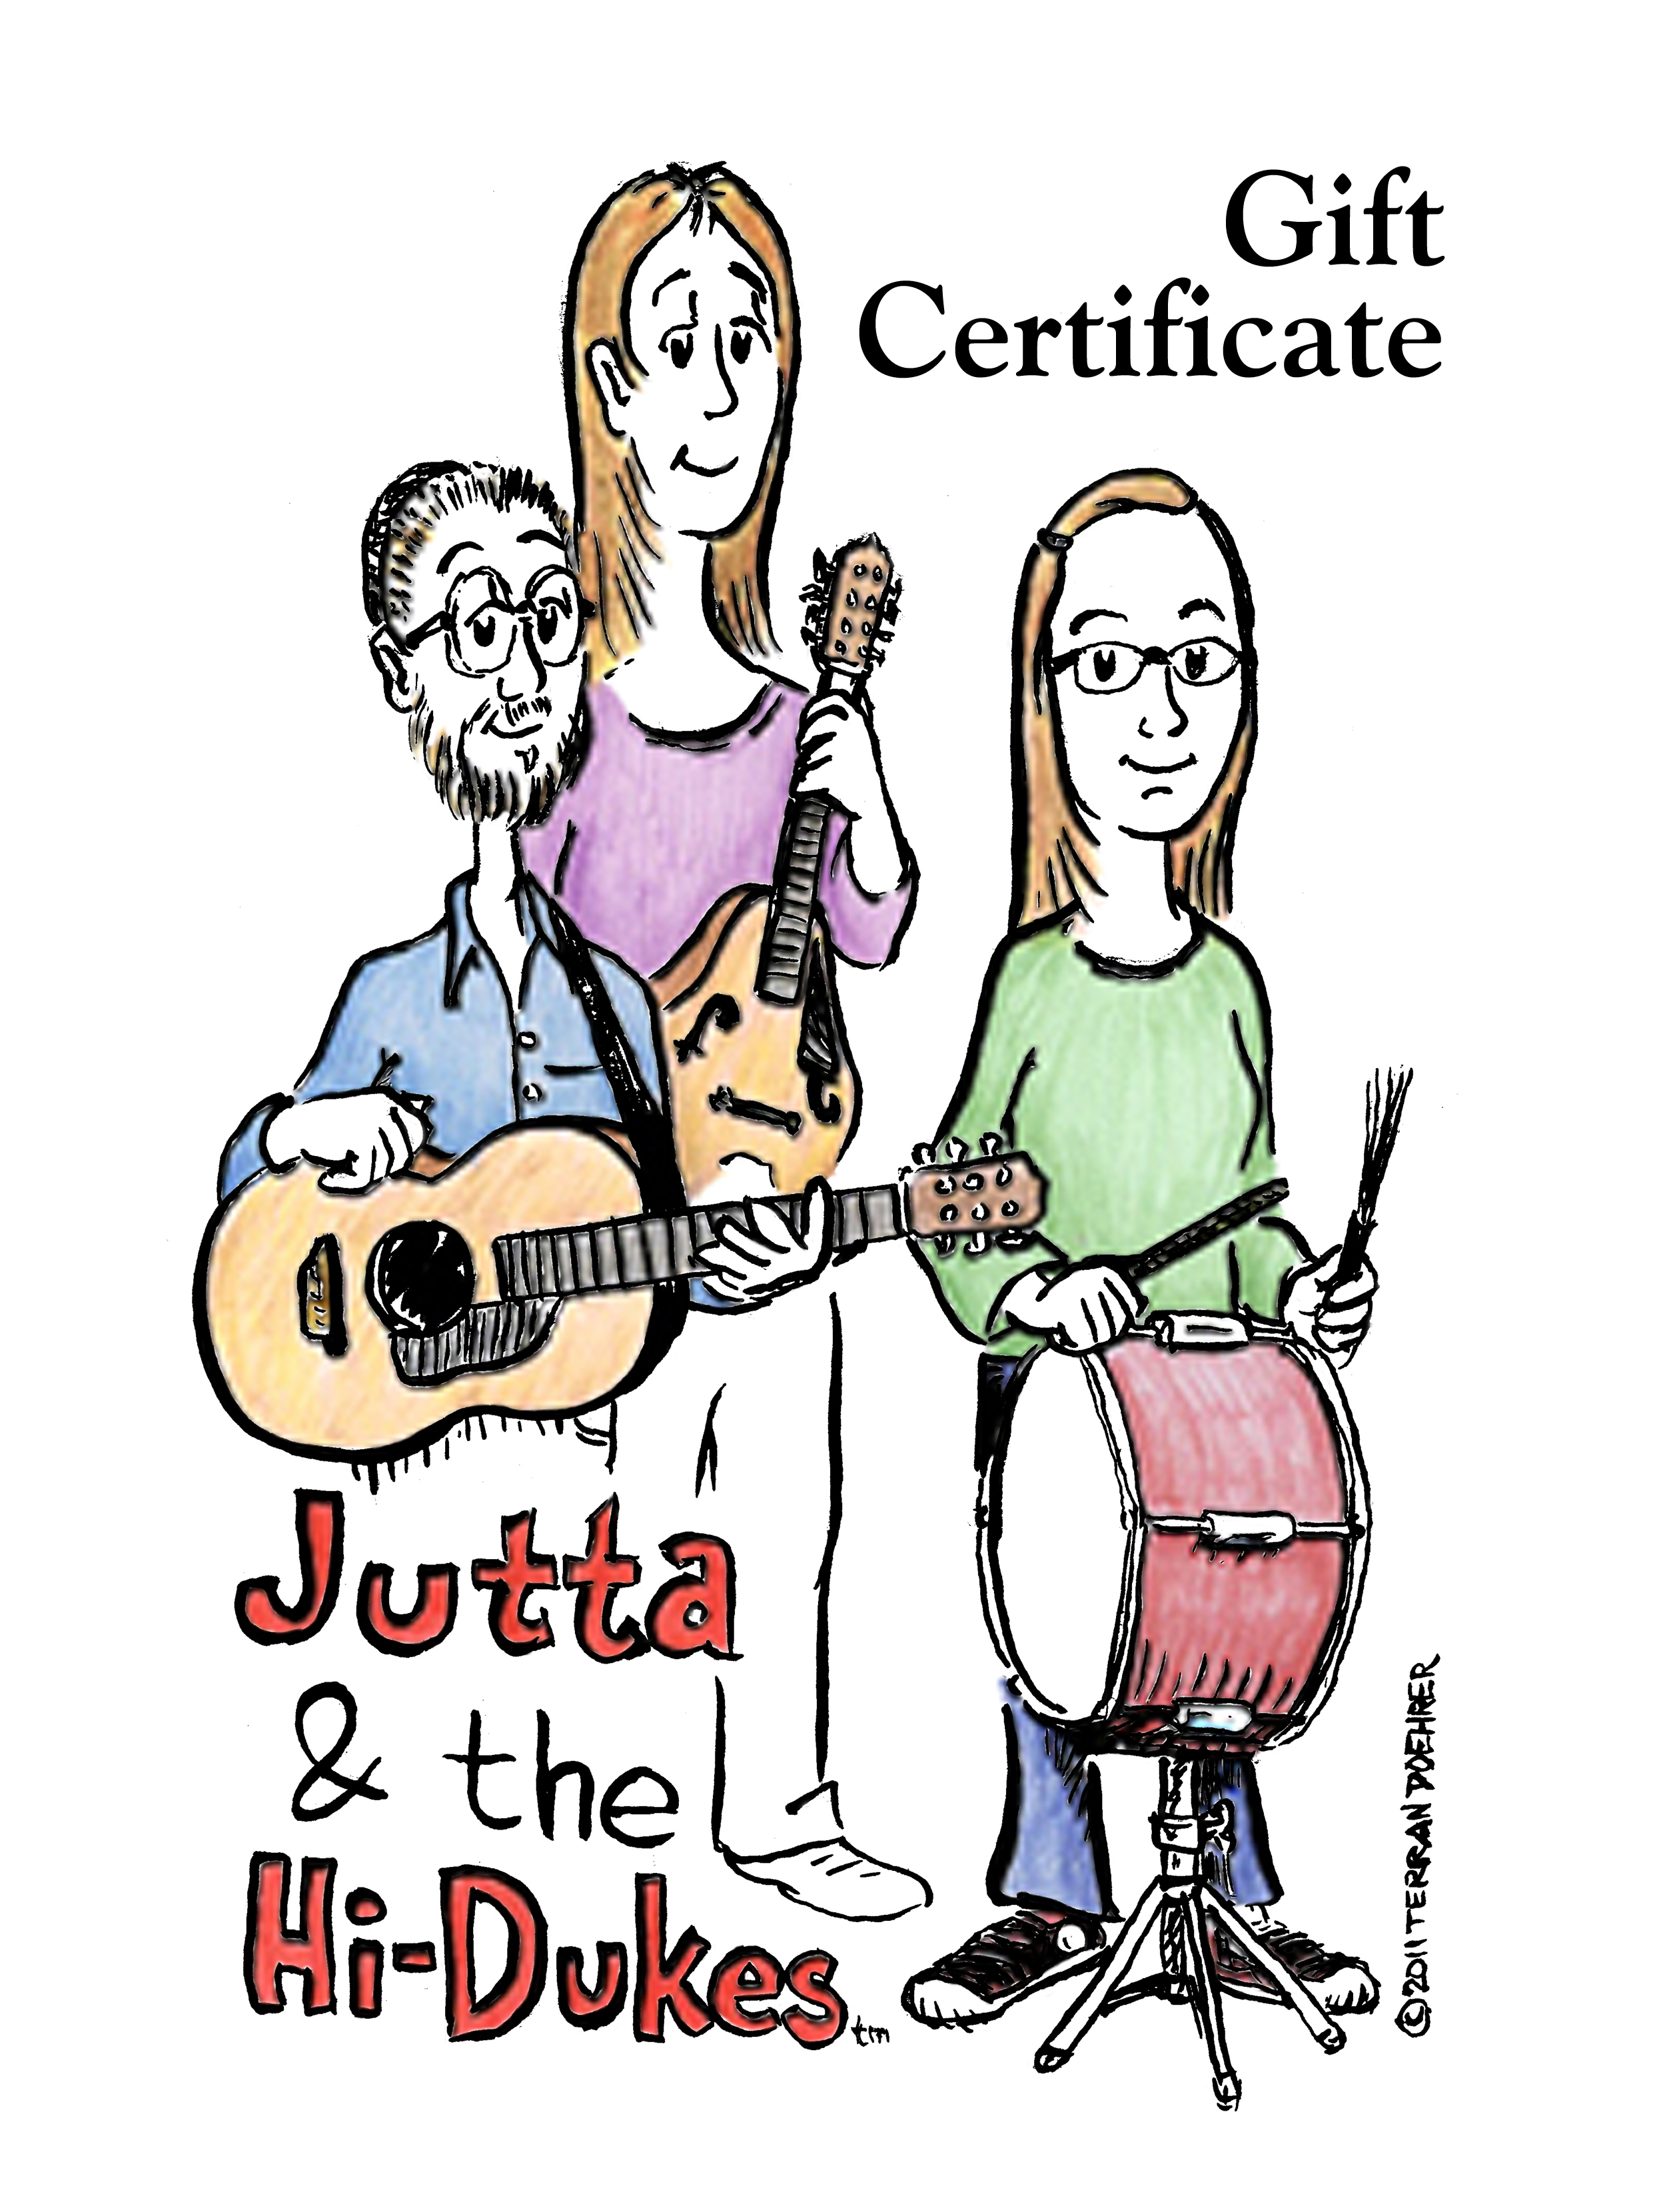 Front side of a Hi-Dukes Gift Certificate with a cartoon drawing of the band as a trio.